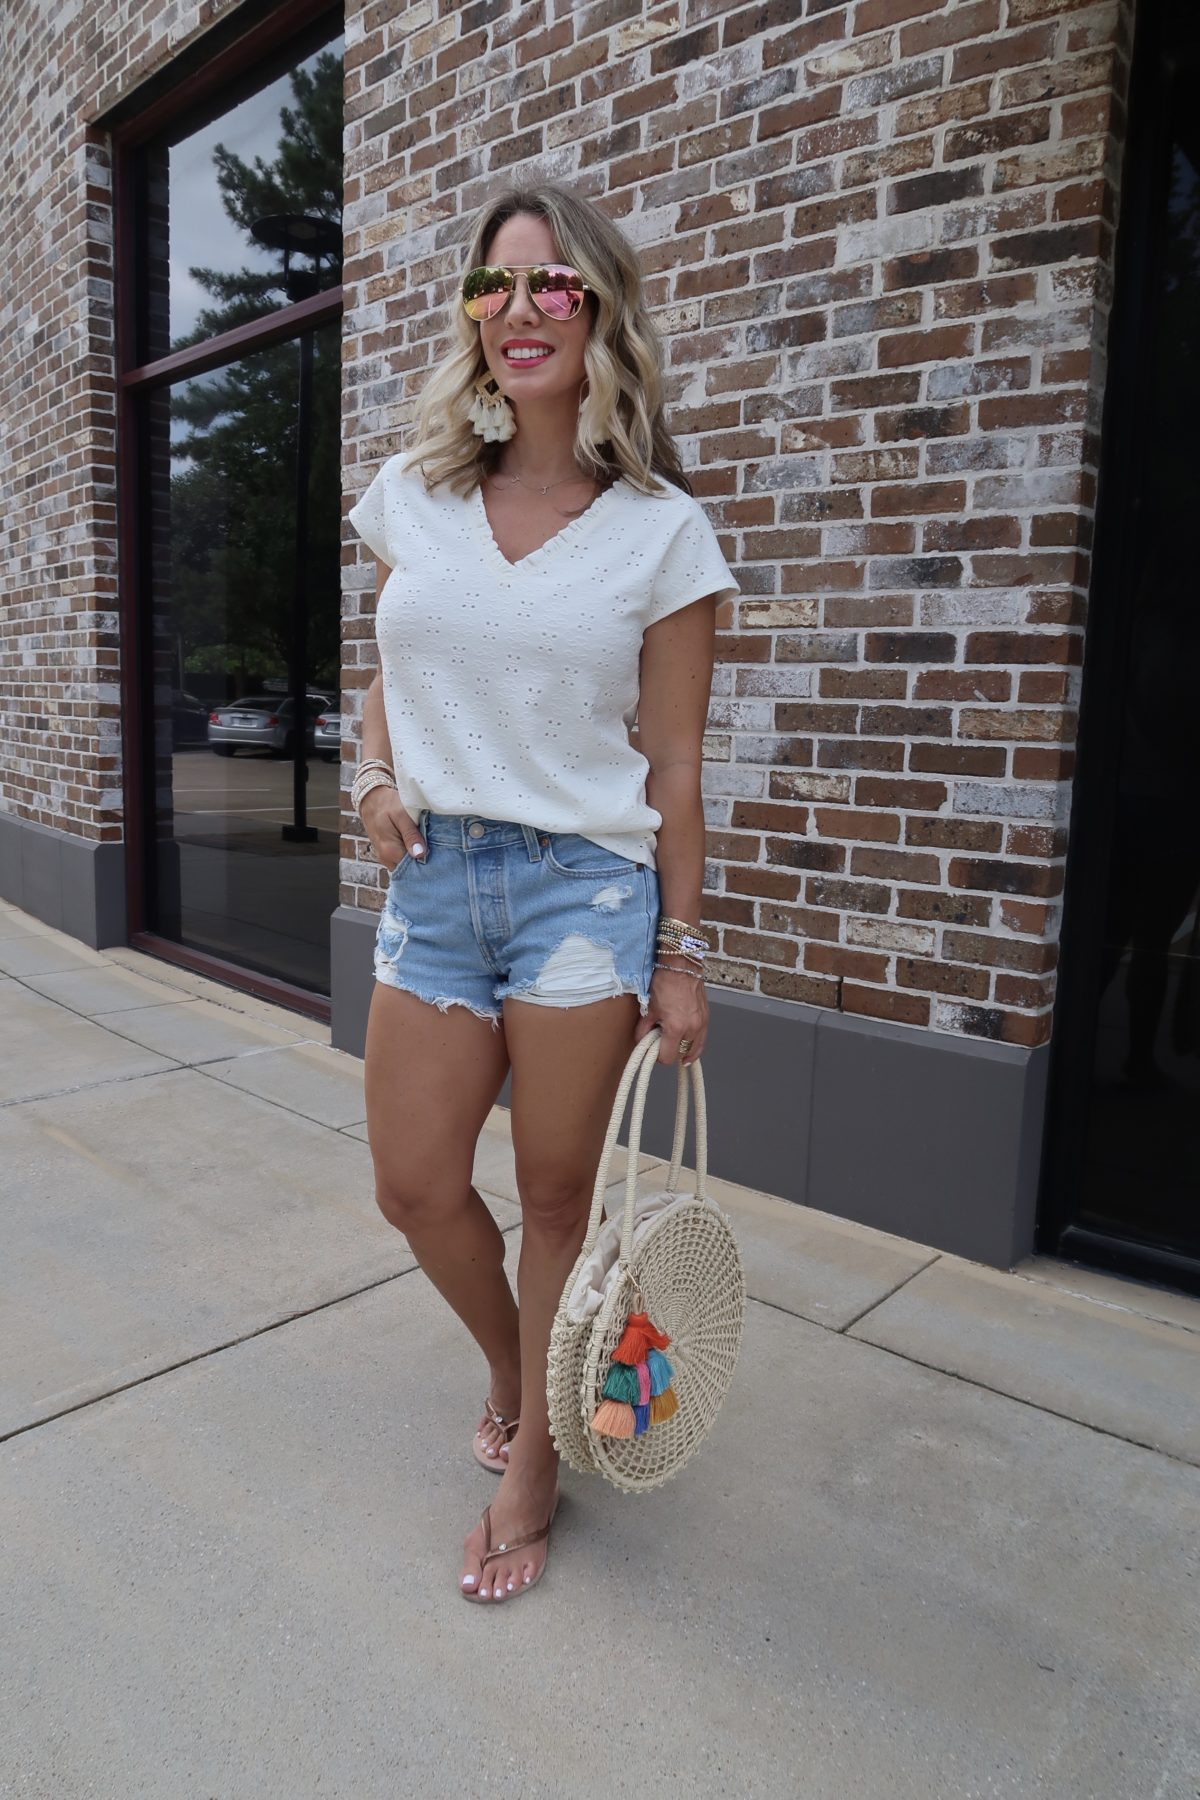 New Summer Styles, White Eyelet Top, Blue Jeans Shorts, Flip Flops, Woven Circle Bag with Tassel